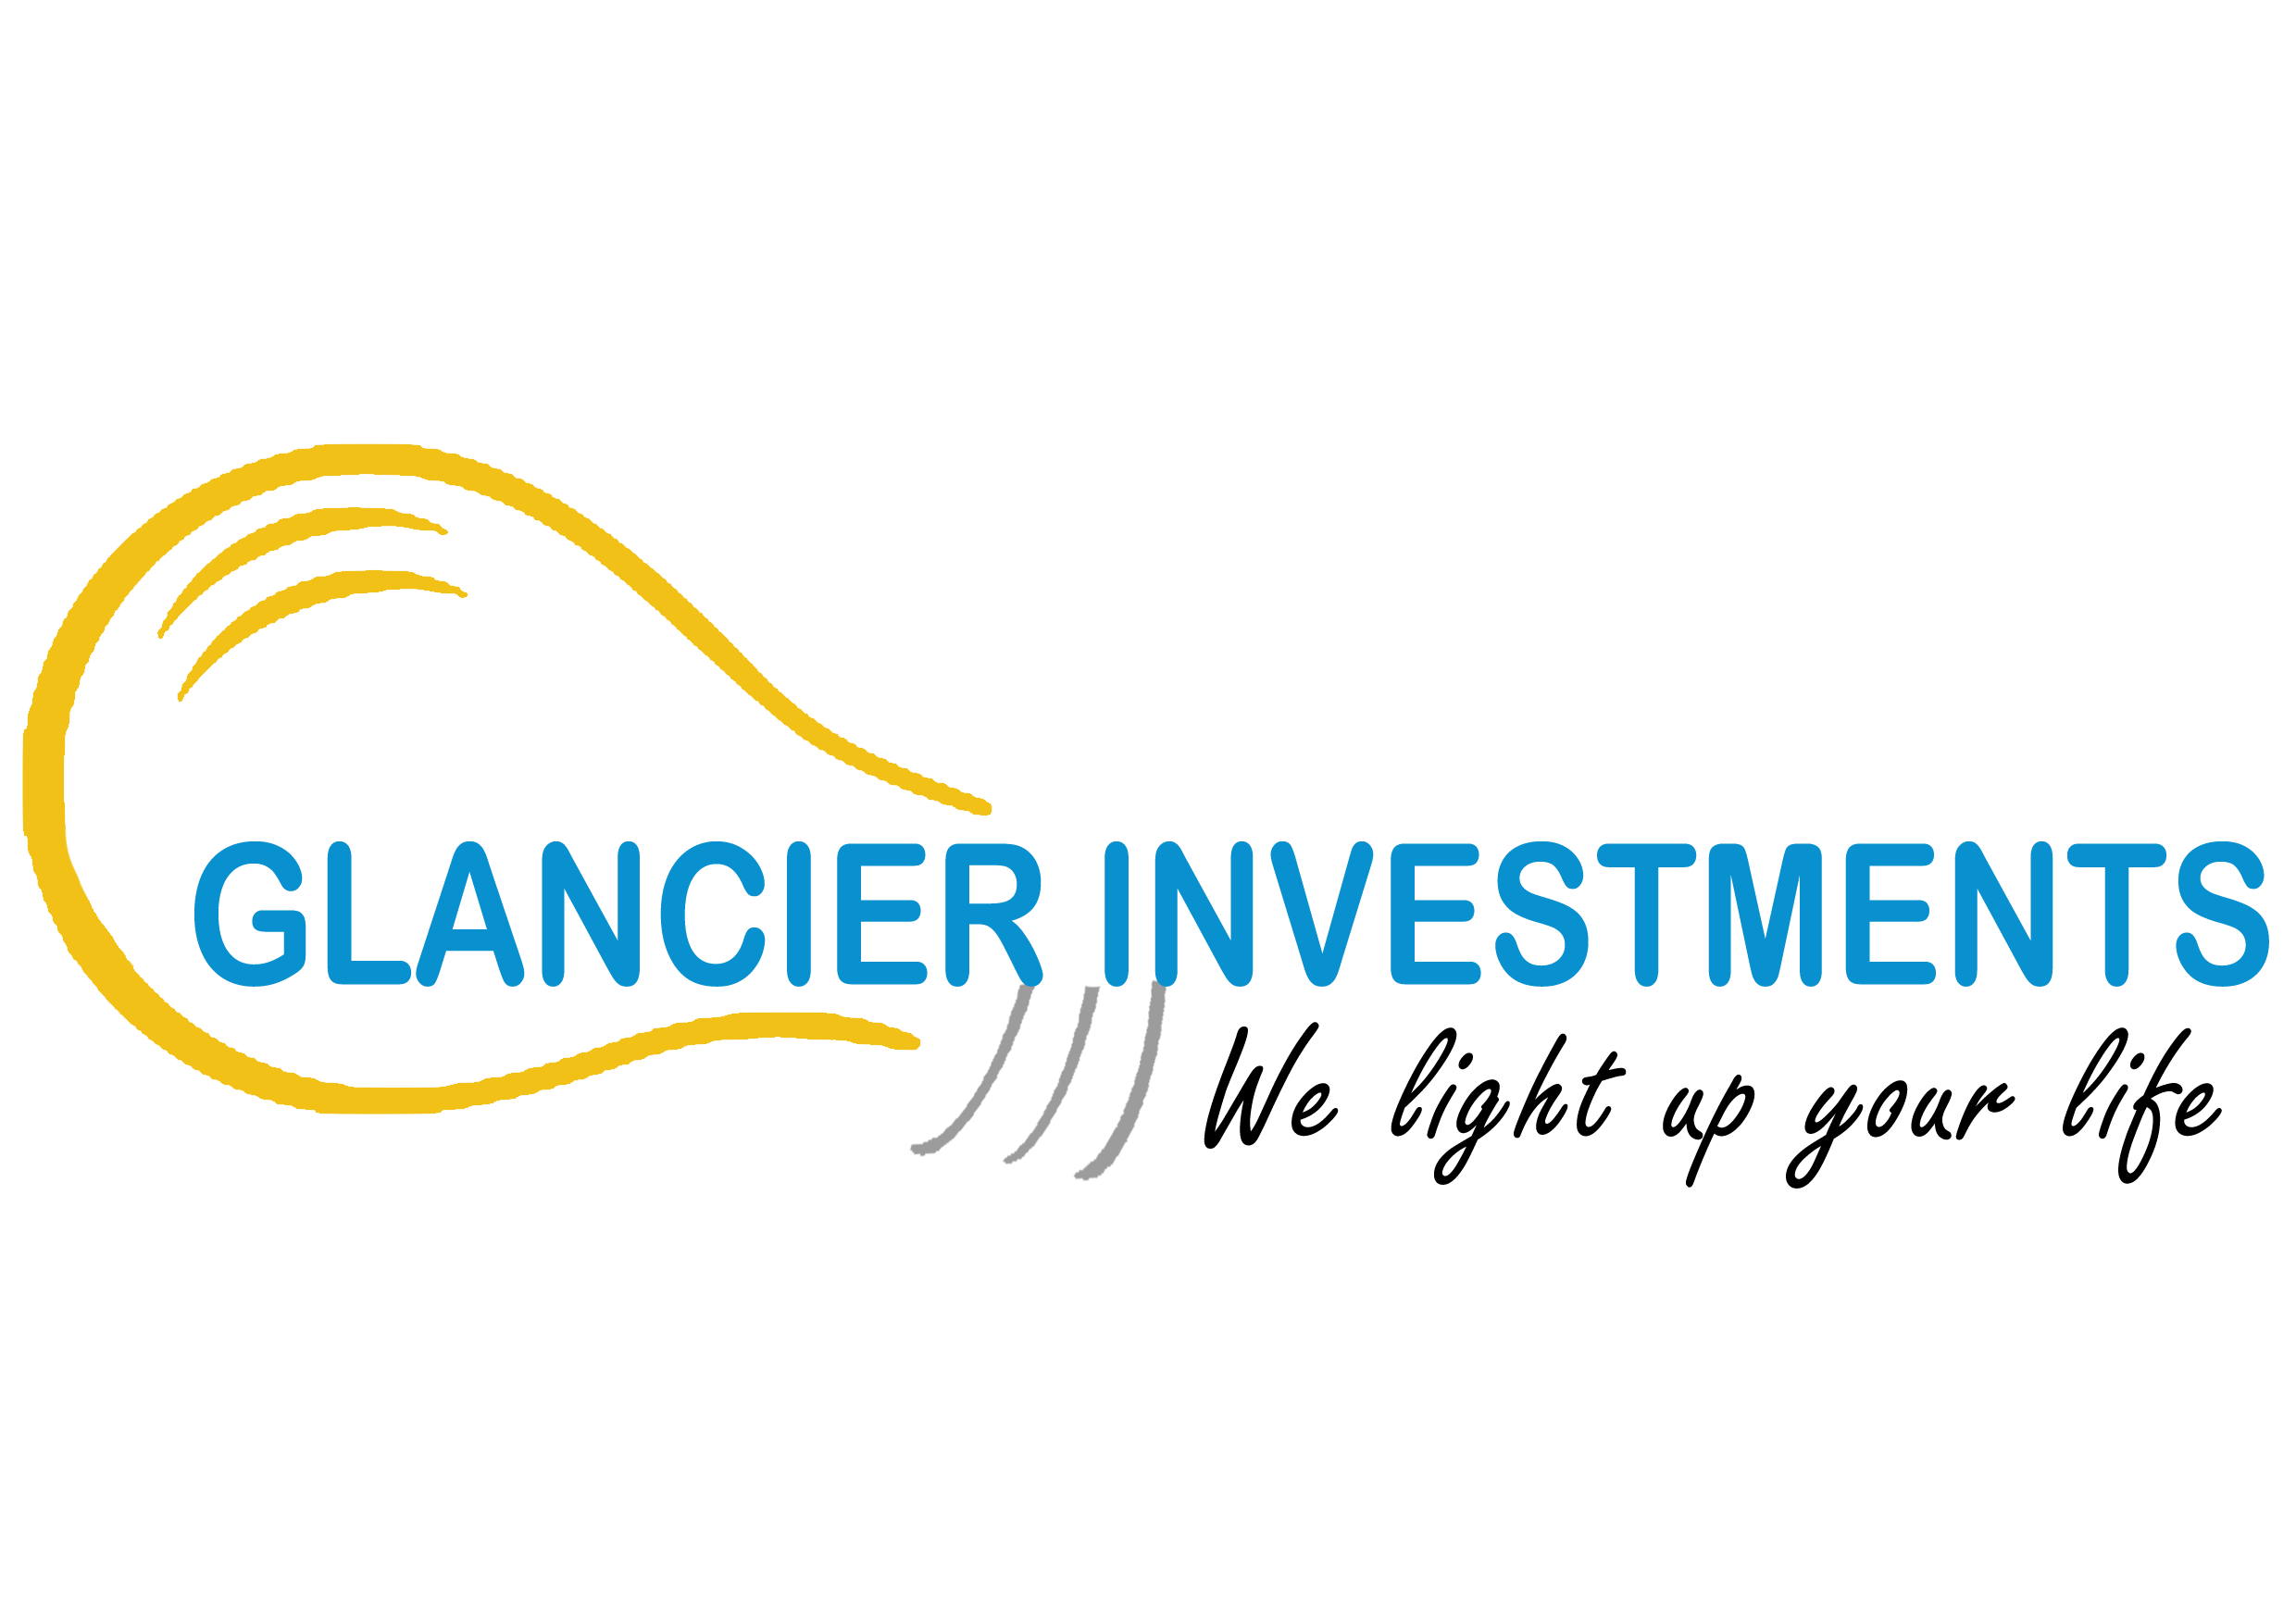 Glancier-Investments